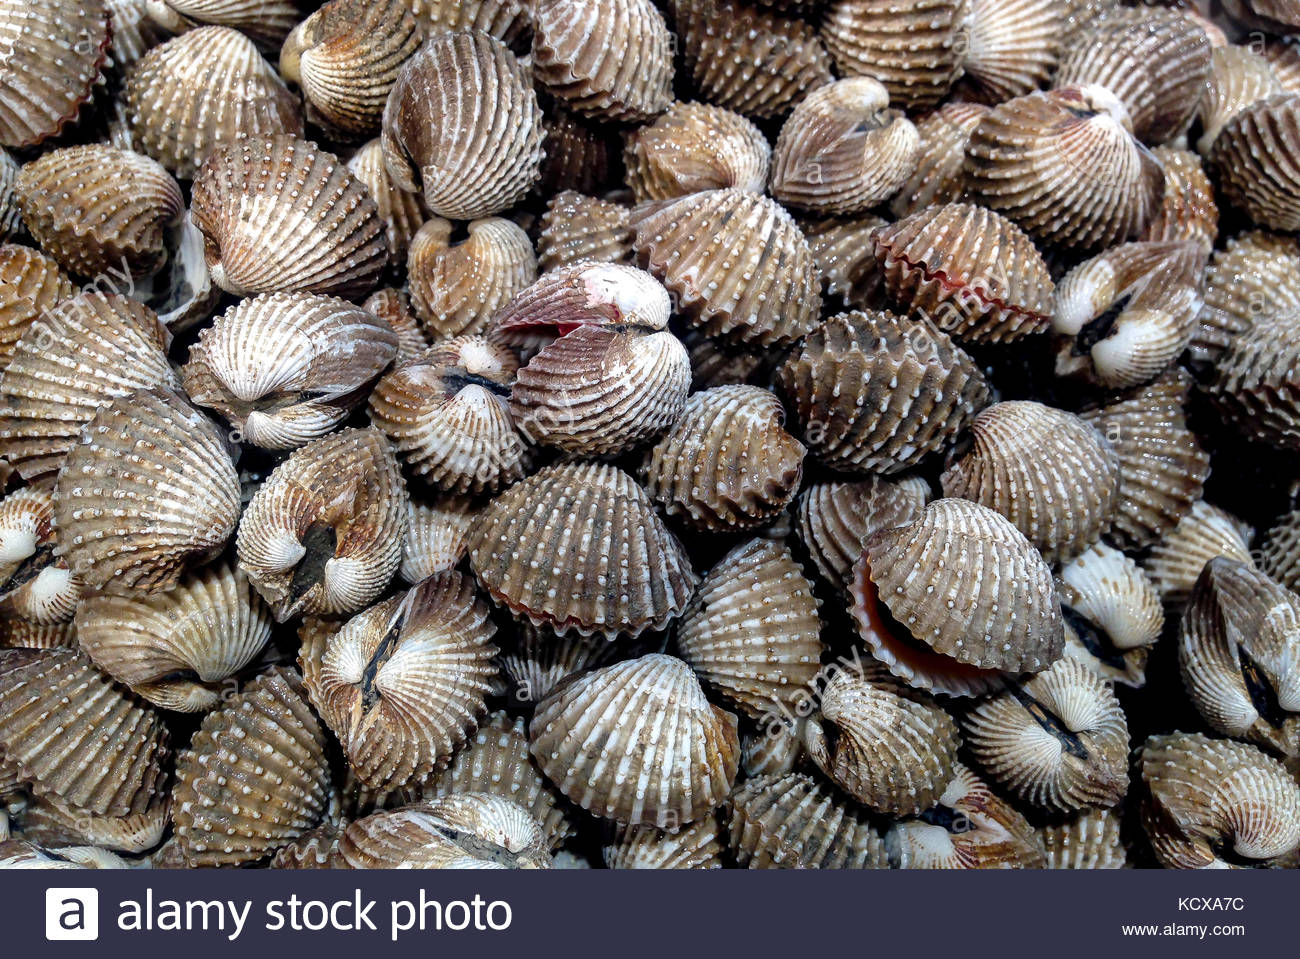 Fresh Clams on the Market - Stock Image